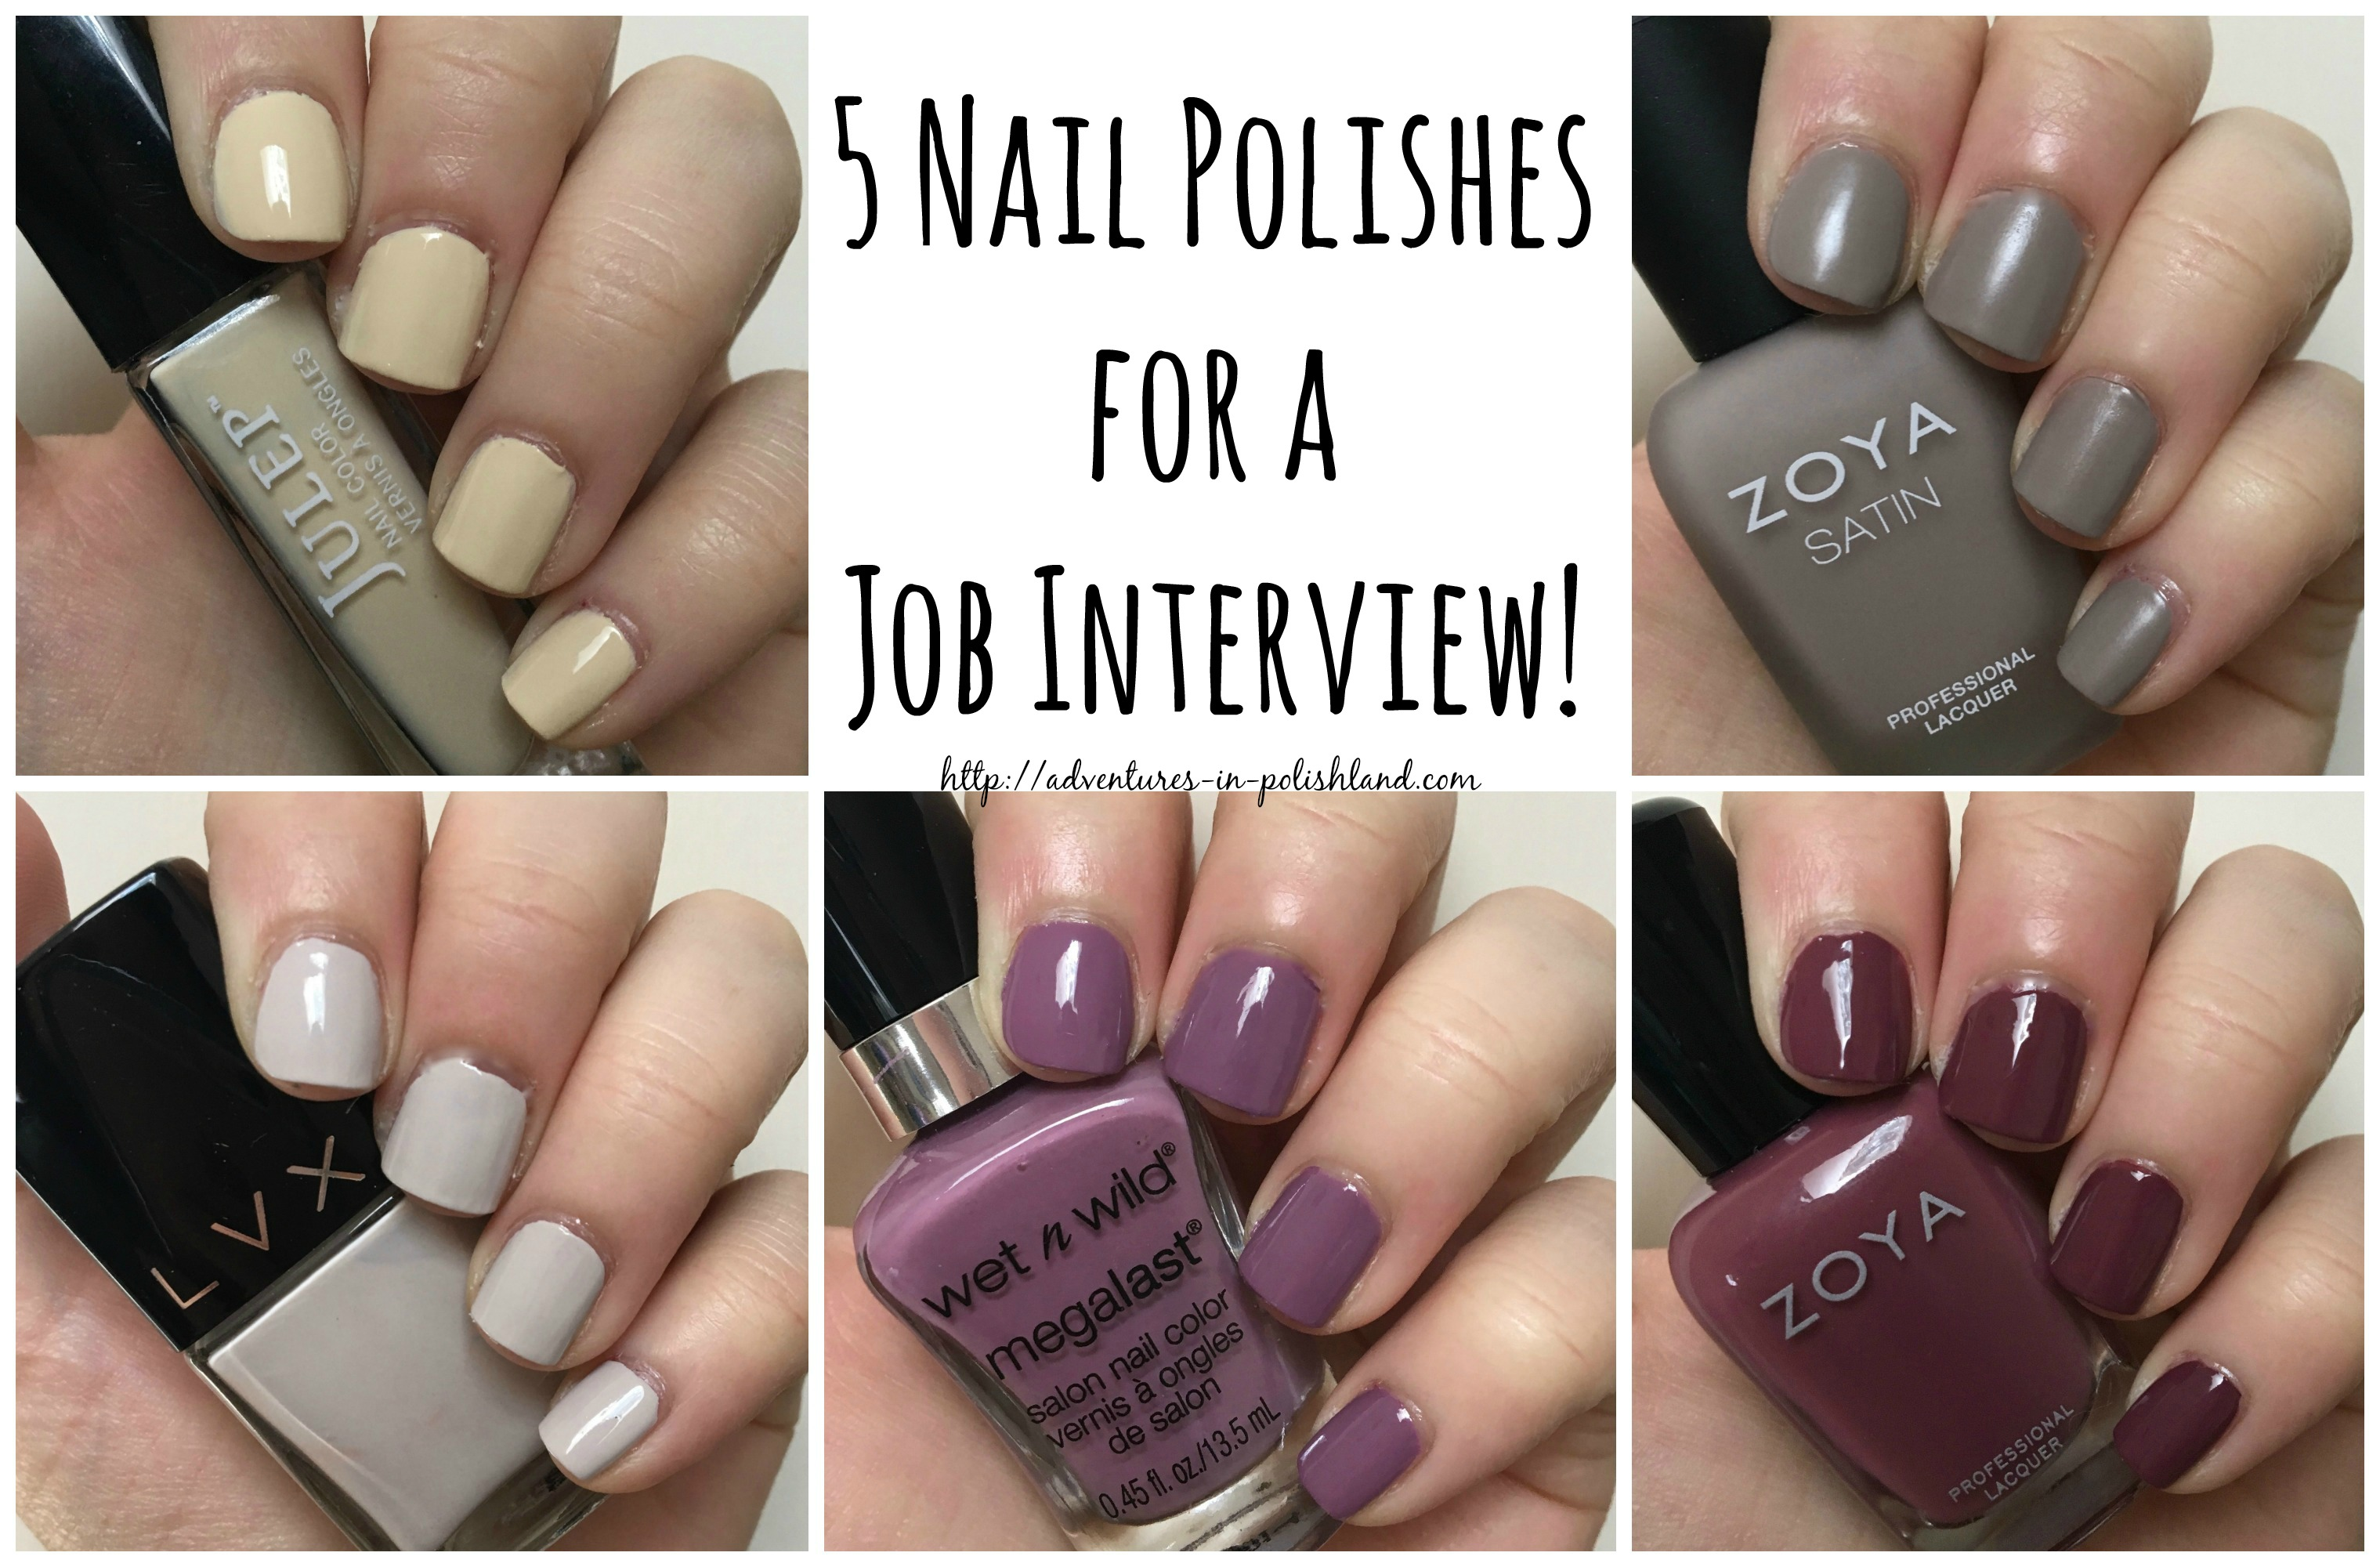 5 Nail Polishes for a Job Interview – Adventures in Polishland